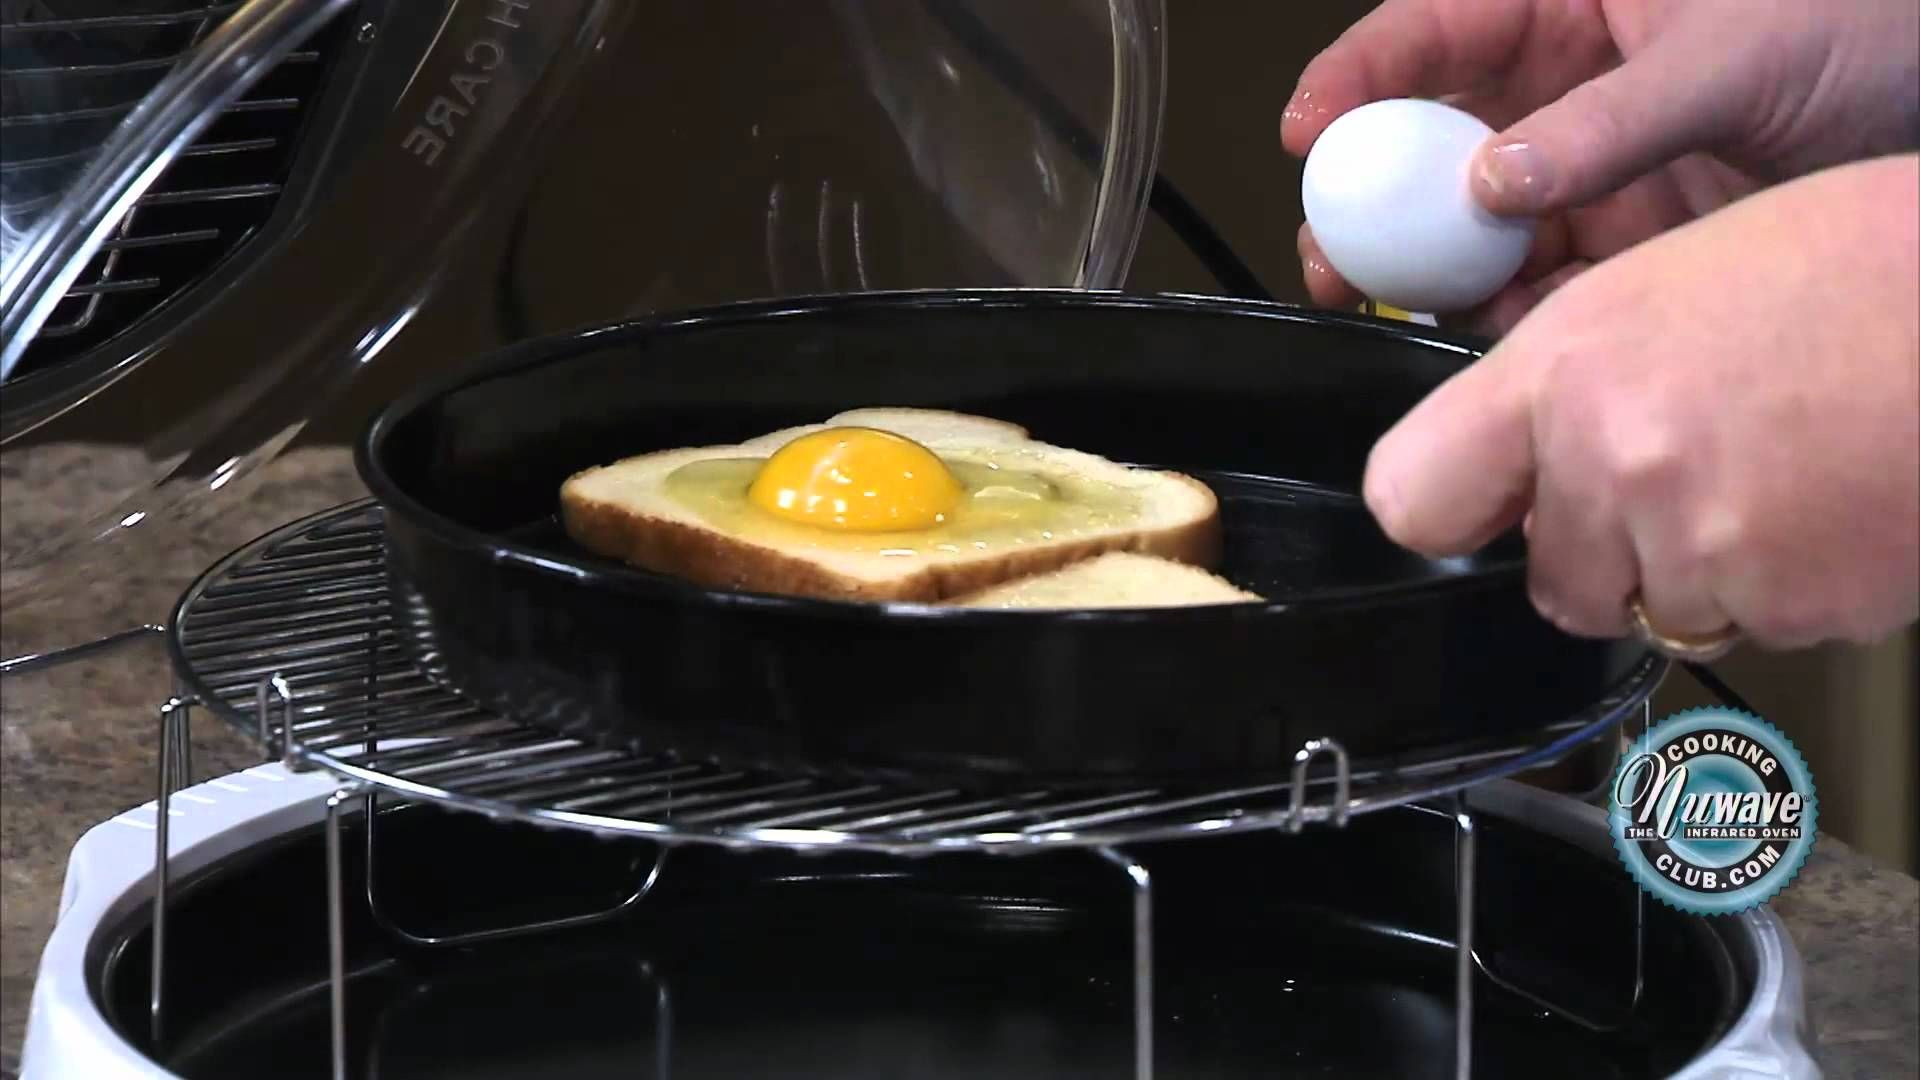 Ovensi Videos Porno how to prepare nest egg with manchego using the nuwave oven